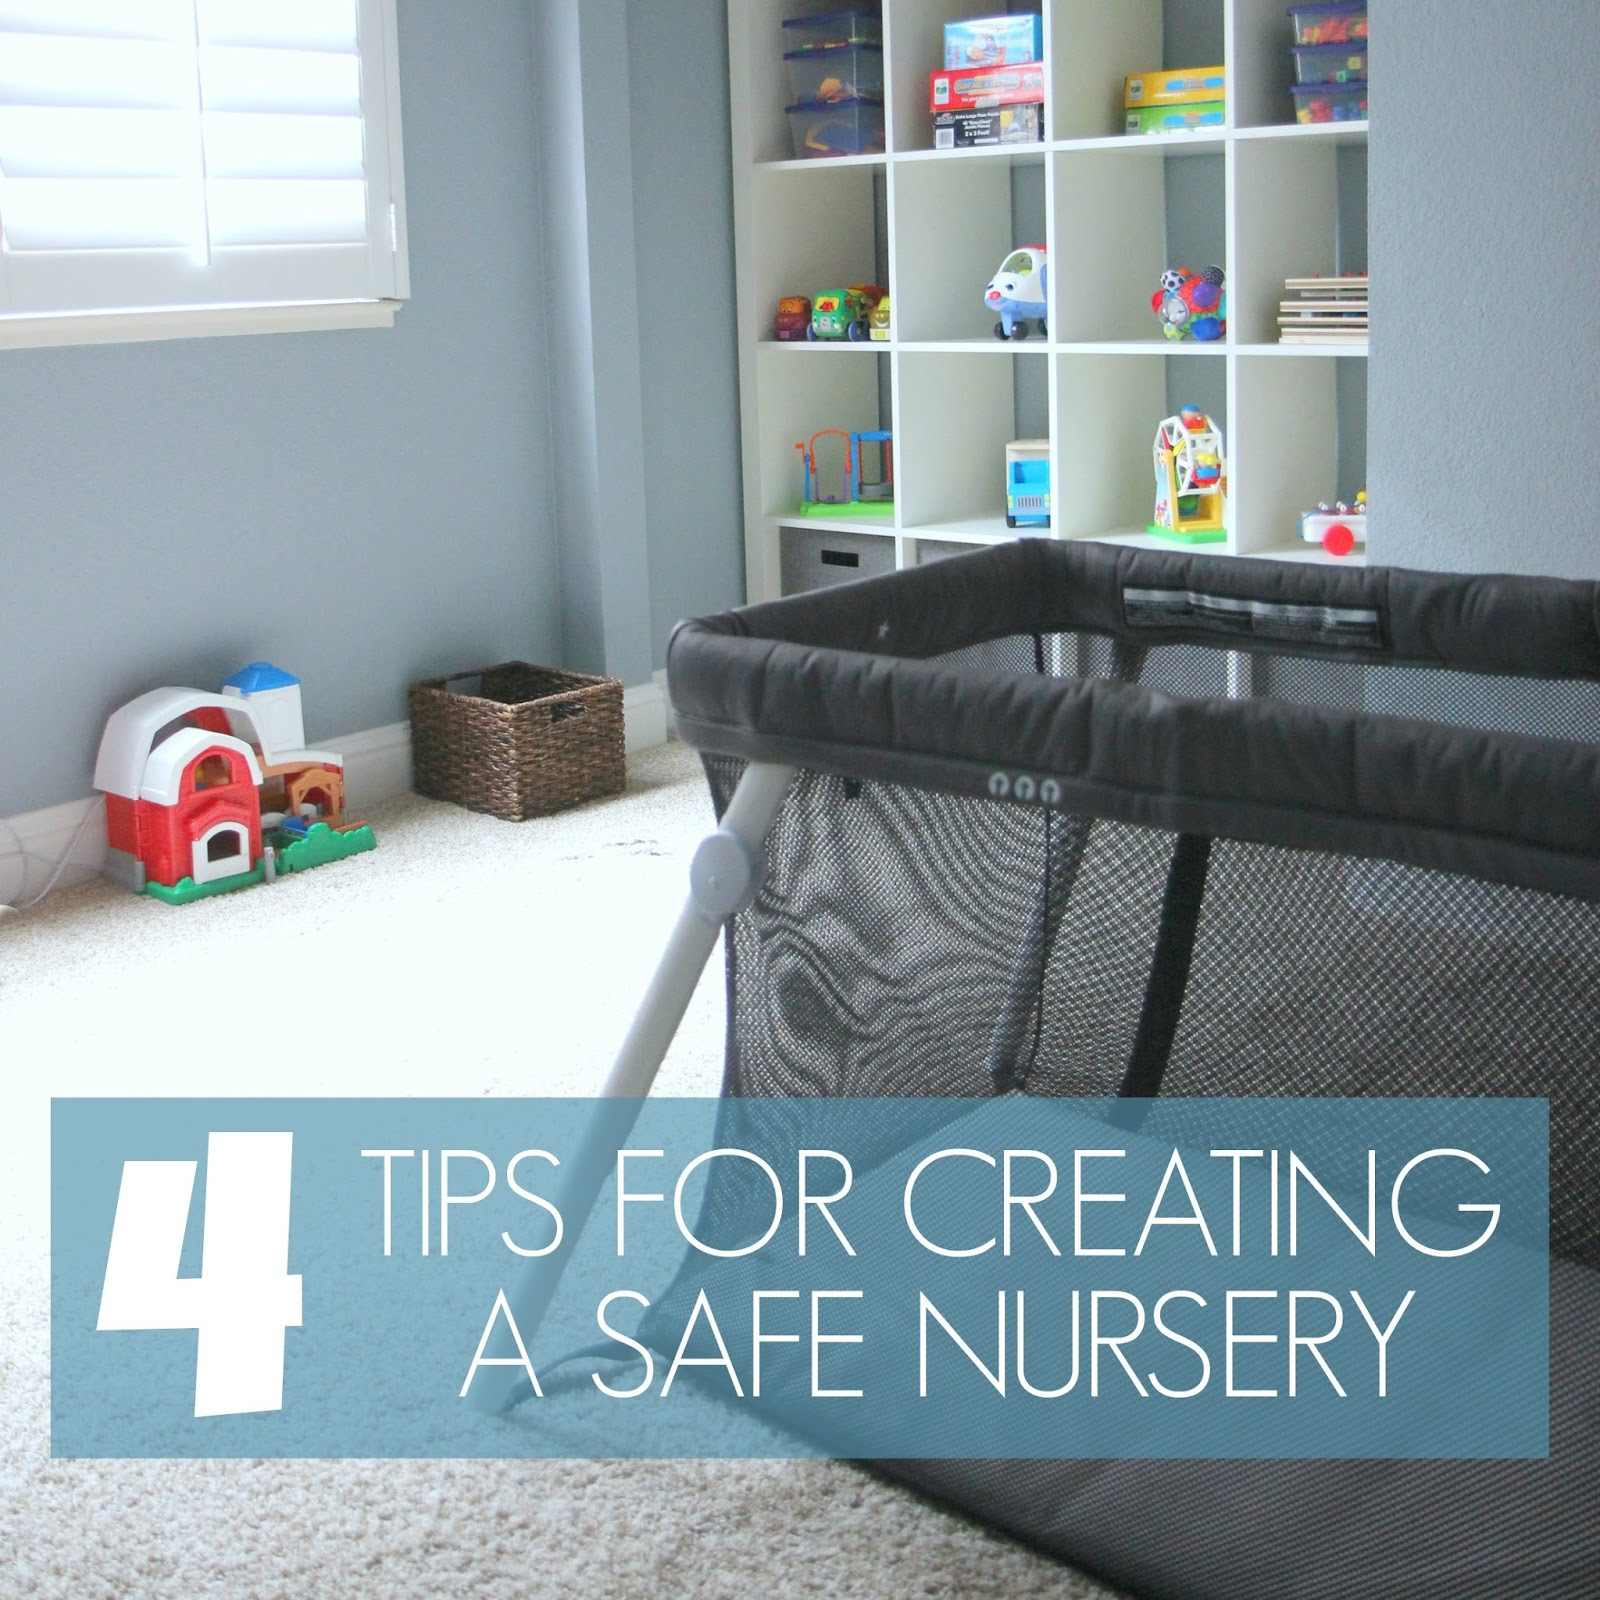 Top tips for making a baby s nursery special - Today I Want To Share A Little Peek Into Our Simple Playroom Nursery And Tell You A Little Bit About Some Simple Safety Tips We Kept In Mind As We Created